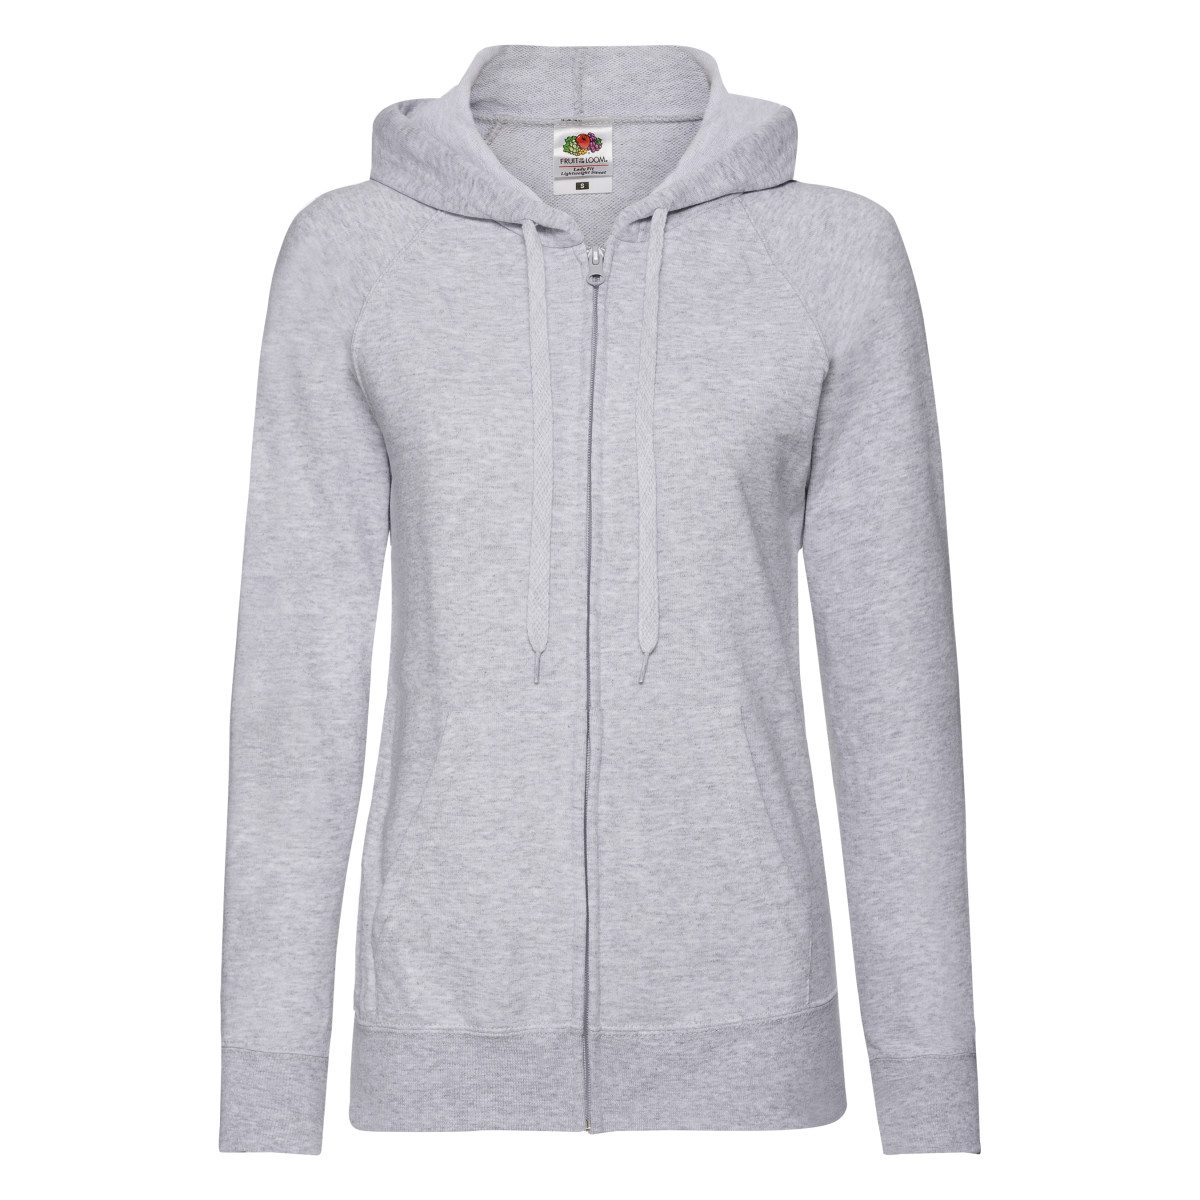 Fruit Of The Loom Ladies Fitted Lightweight Hooded Sweatshirts Jacket / Zoodie (240 GSM) (XL) (Heather Grey)